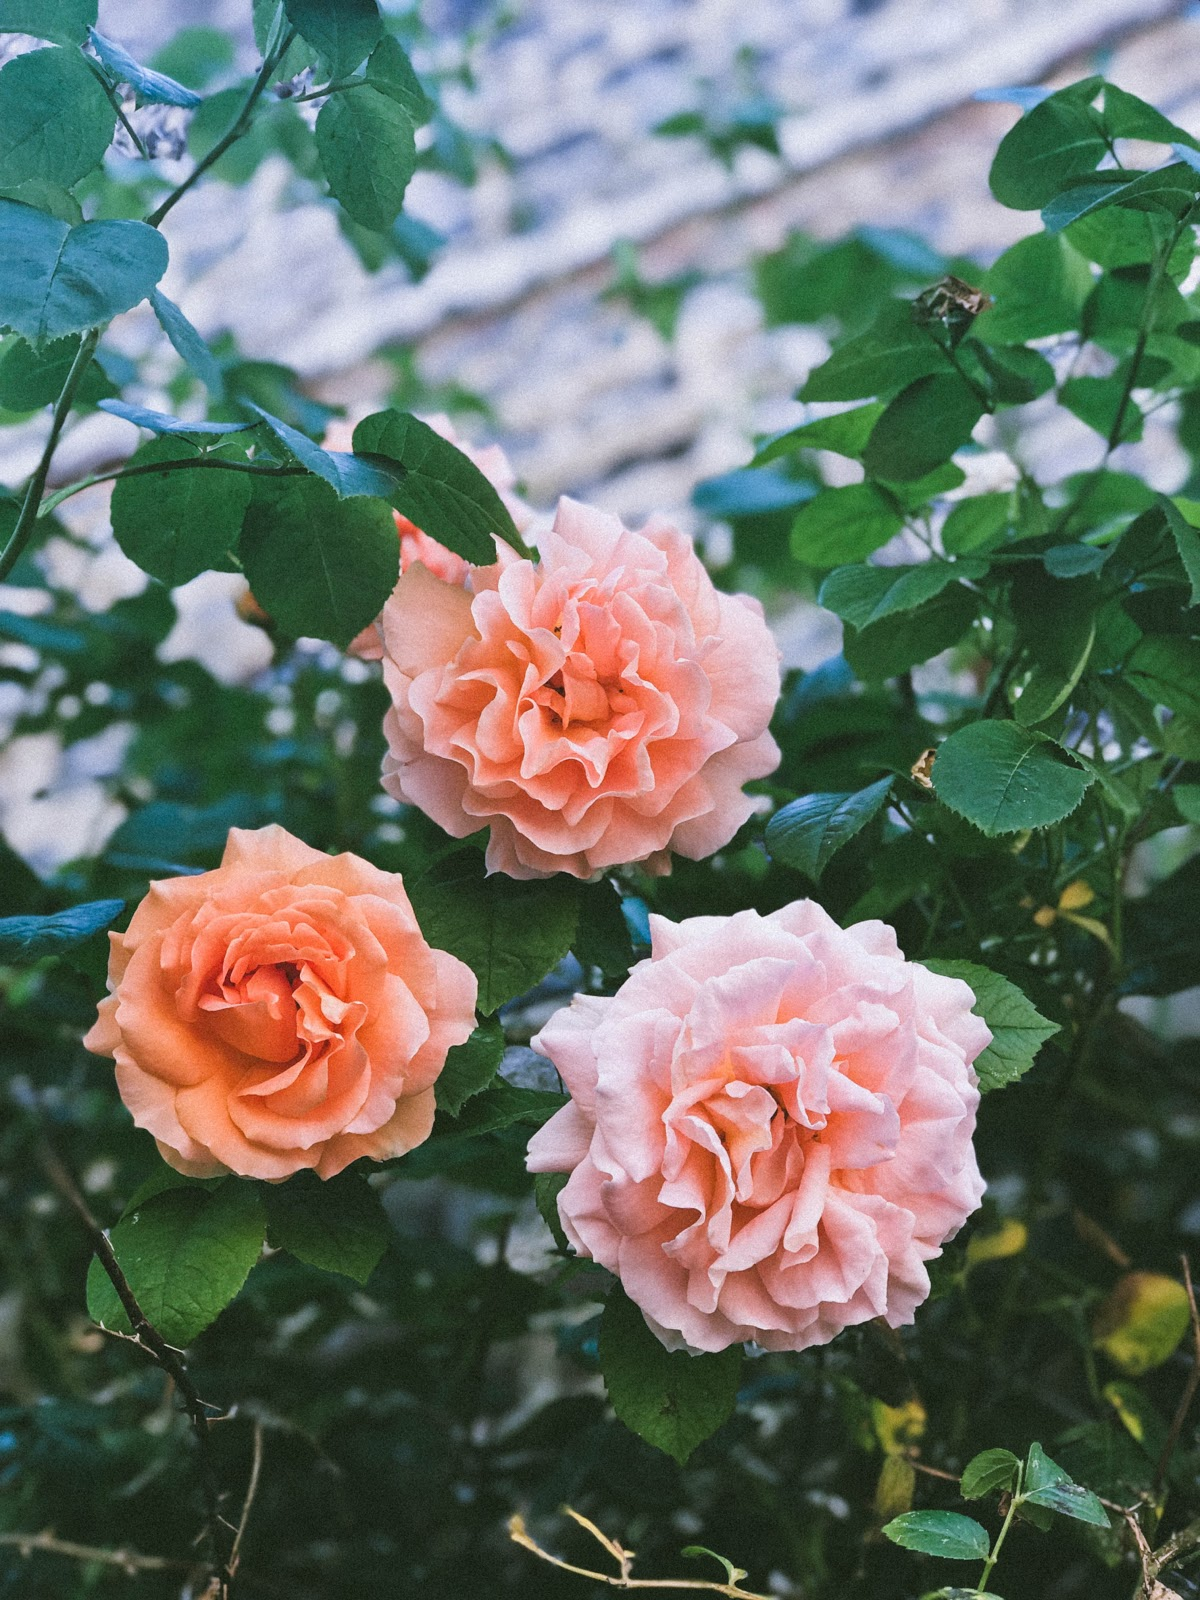 100+ Rose Flowers HD Images: Rose is the queen of flowers